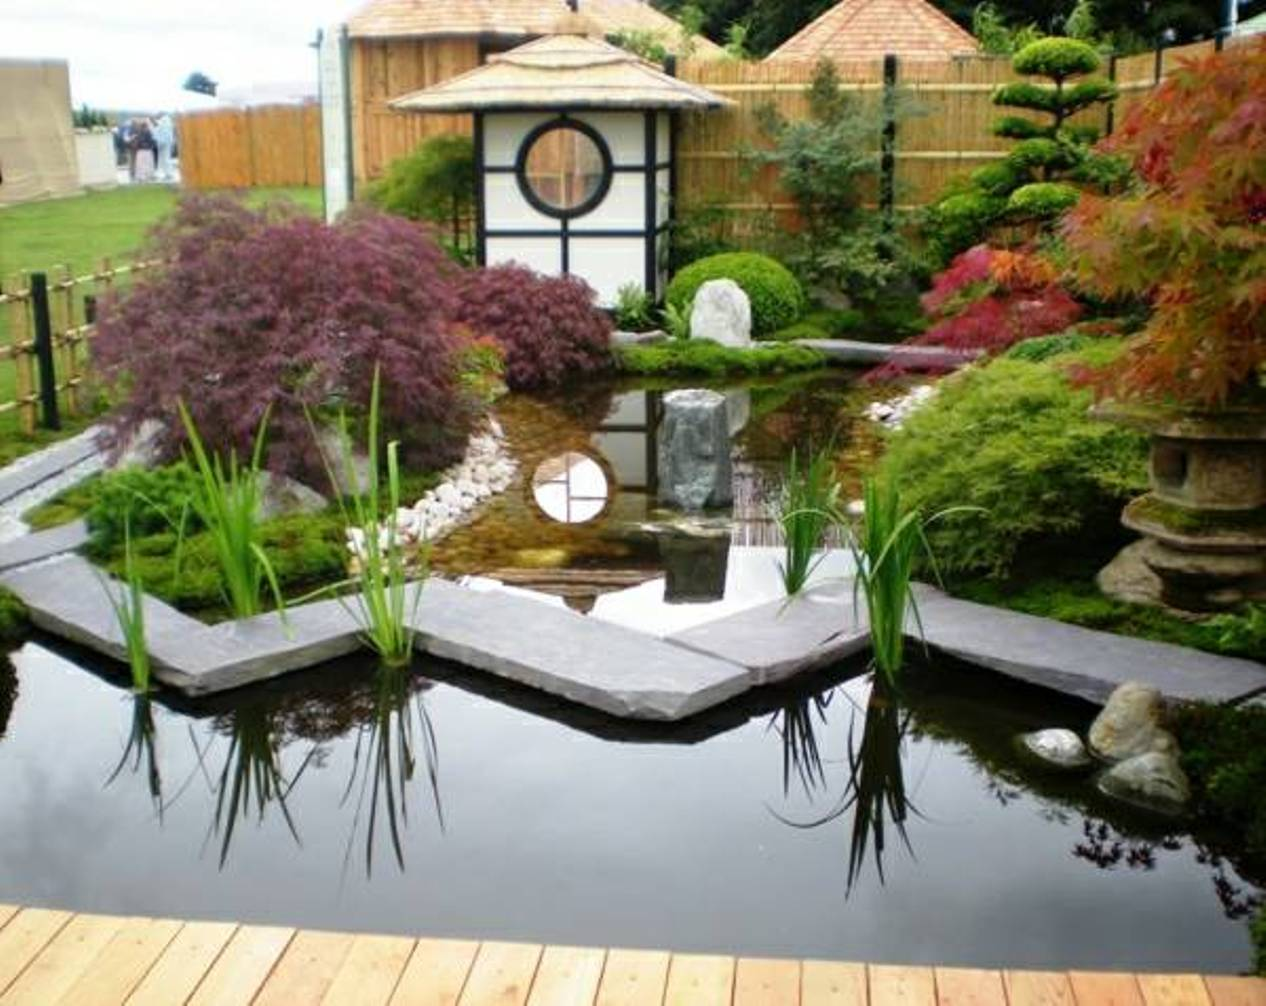 Designing A Japanese Garden Pond. designing a japanese garden pond on japanese modern garden design, japanese garden pool design, japanese garden fountain design, japanese garden stone design, japanese garden gate design, japanese style garden design, vineyard pond design, japanese garden wood design, japanese garden design ideas, japanese vegetable garden design, japanese koi pond design, landscape mediterranean garden design, japanese garden grass design, japanese garden design small spaces, japanese garden fence design, beach pond design, japanese water gardens, fountain pond design, japanese maple tree garden design, waterfall pond design,